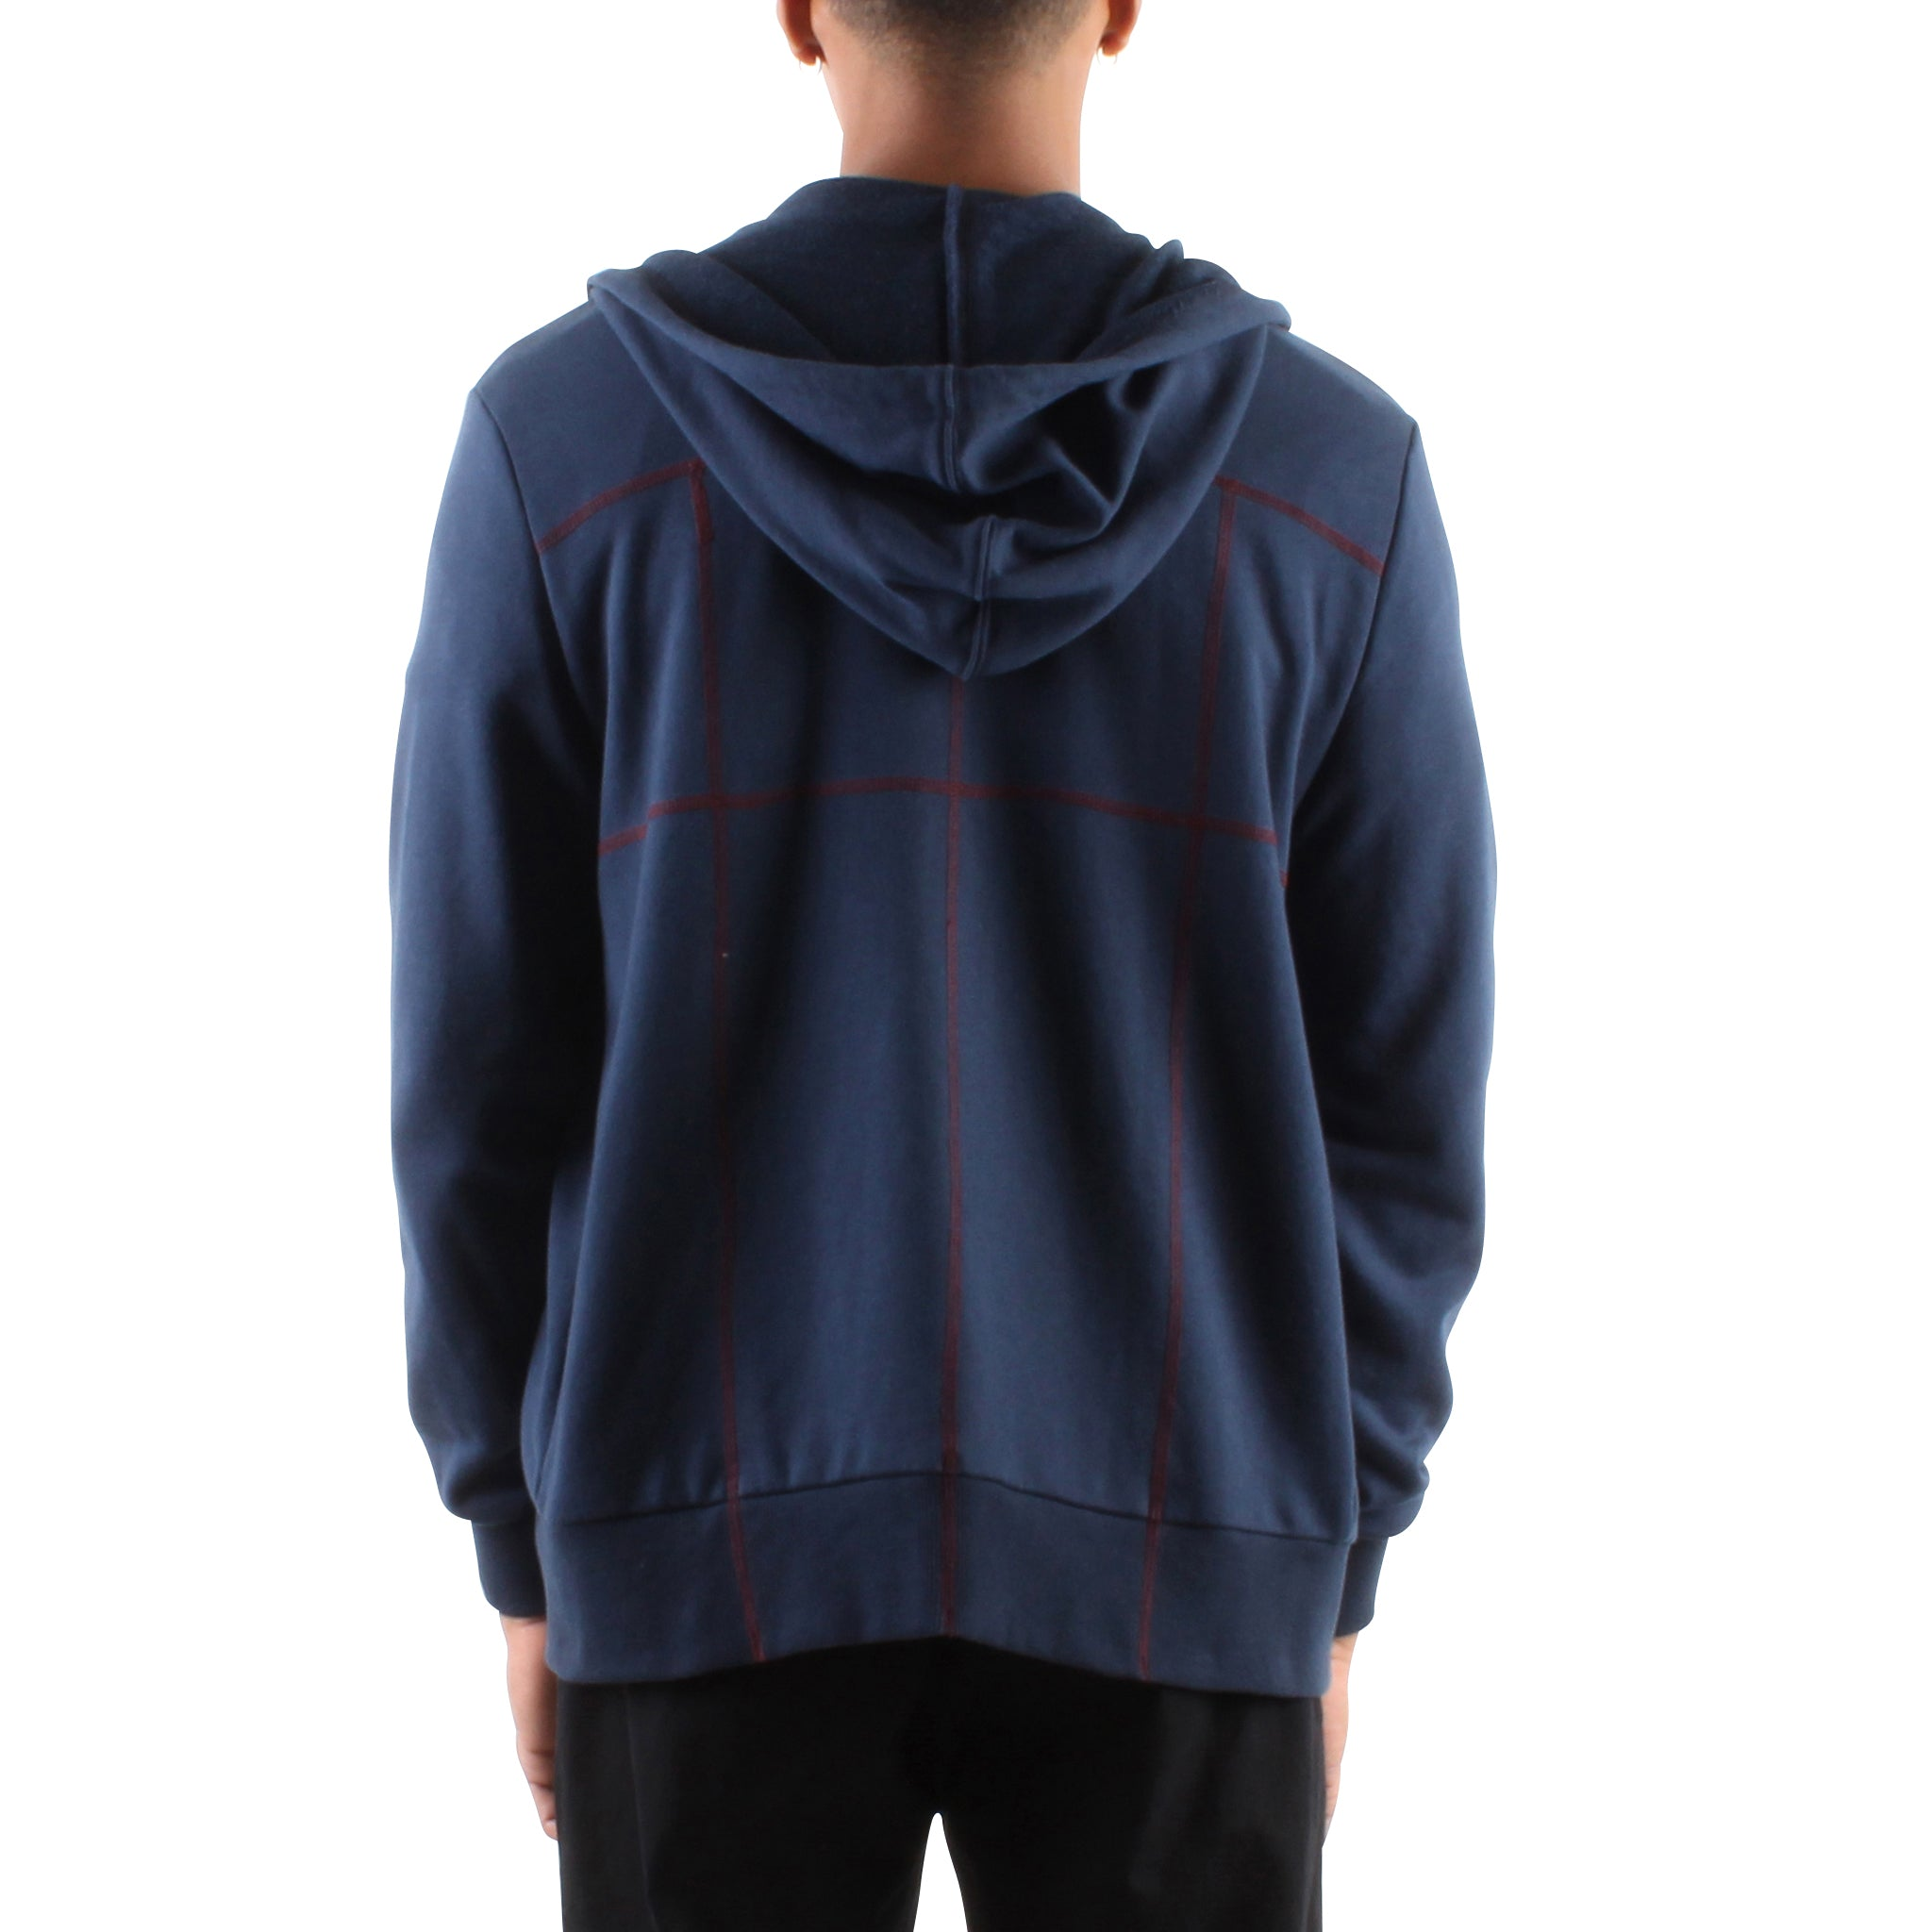 NAVY HOODIE WITH CONTRAST STITCHING